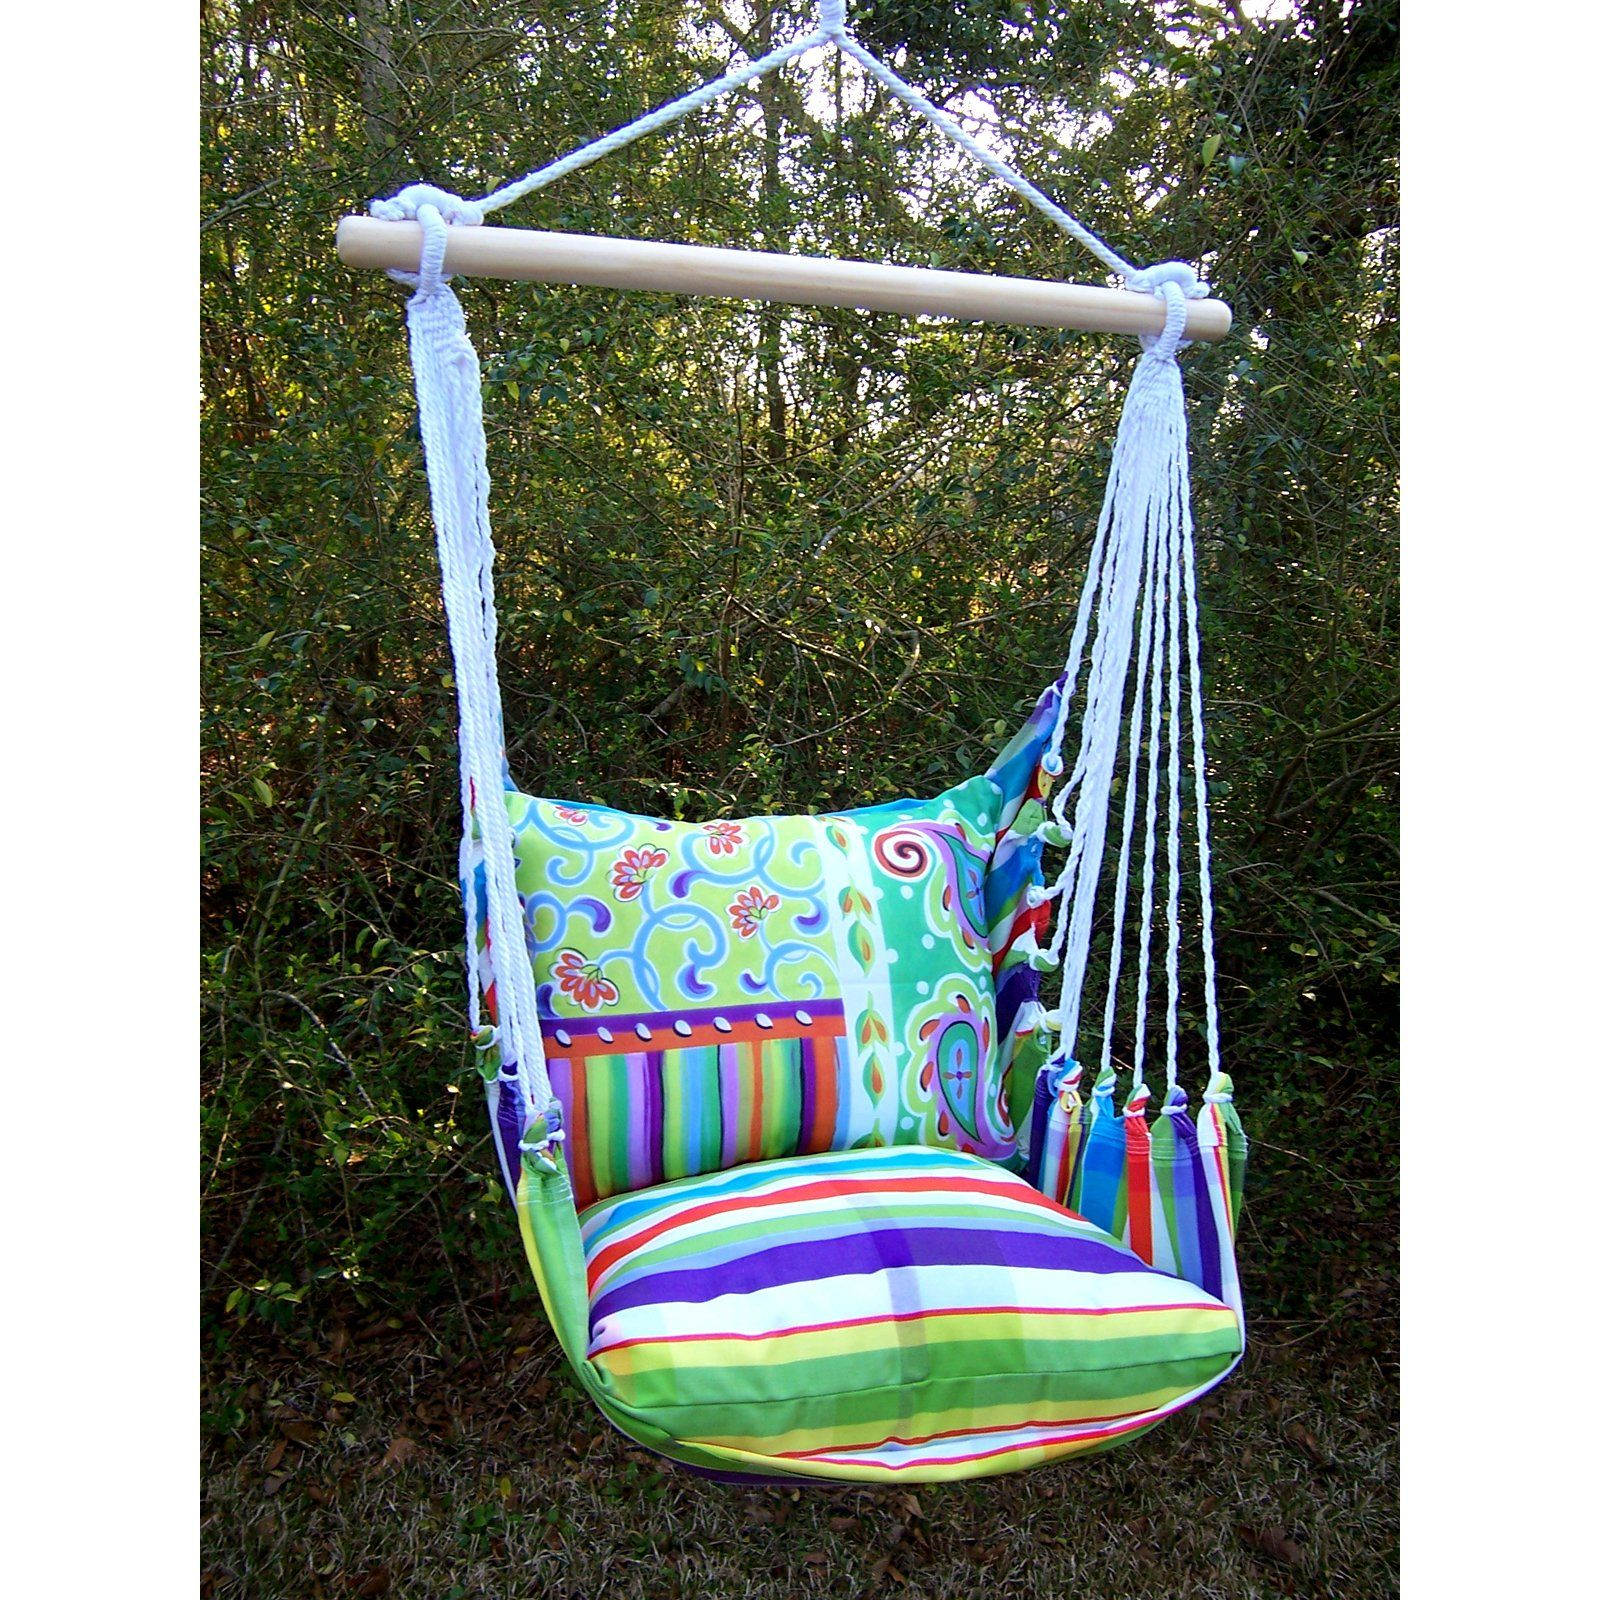 fine  u0026 dandy paisley hammock chair swing set fine  u0026 dandy material no longer available  add elegance and refreshing style into your garden decor with the     have to have it  magnolia casual fine   gardening outdoor space      rh   pinterest